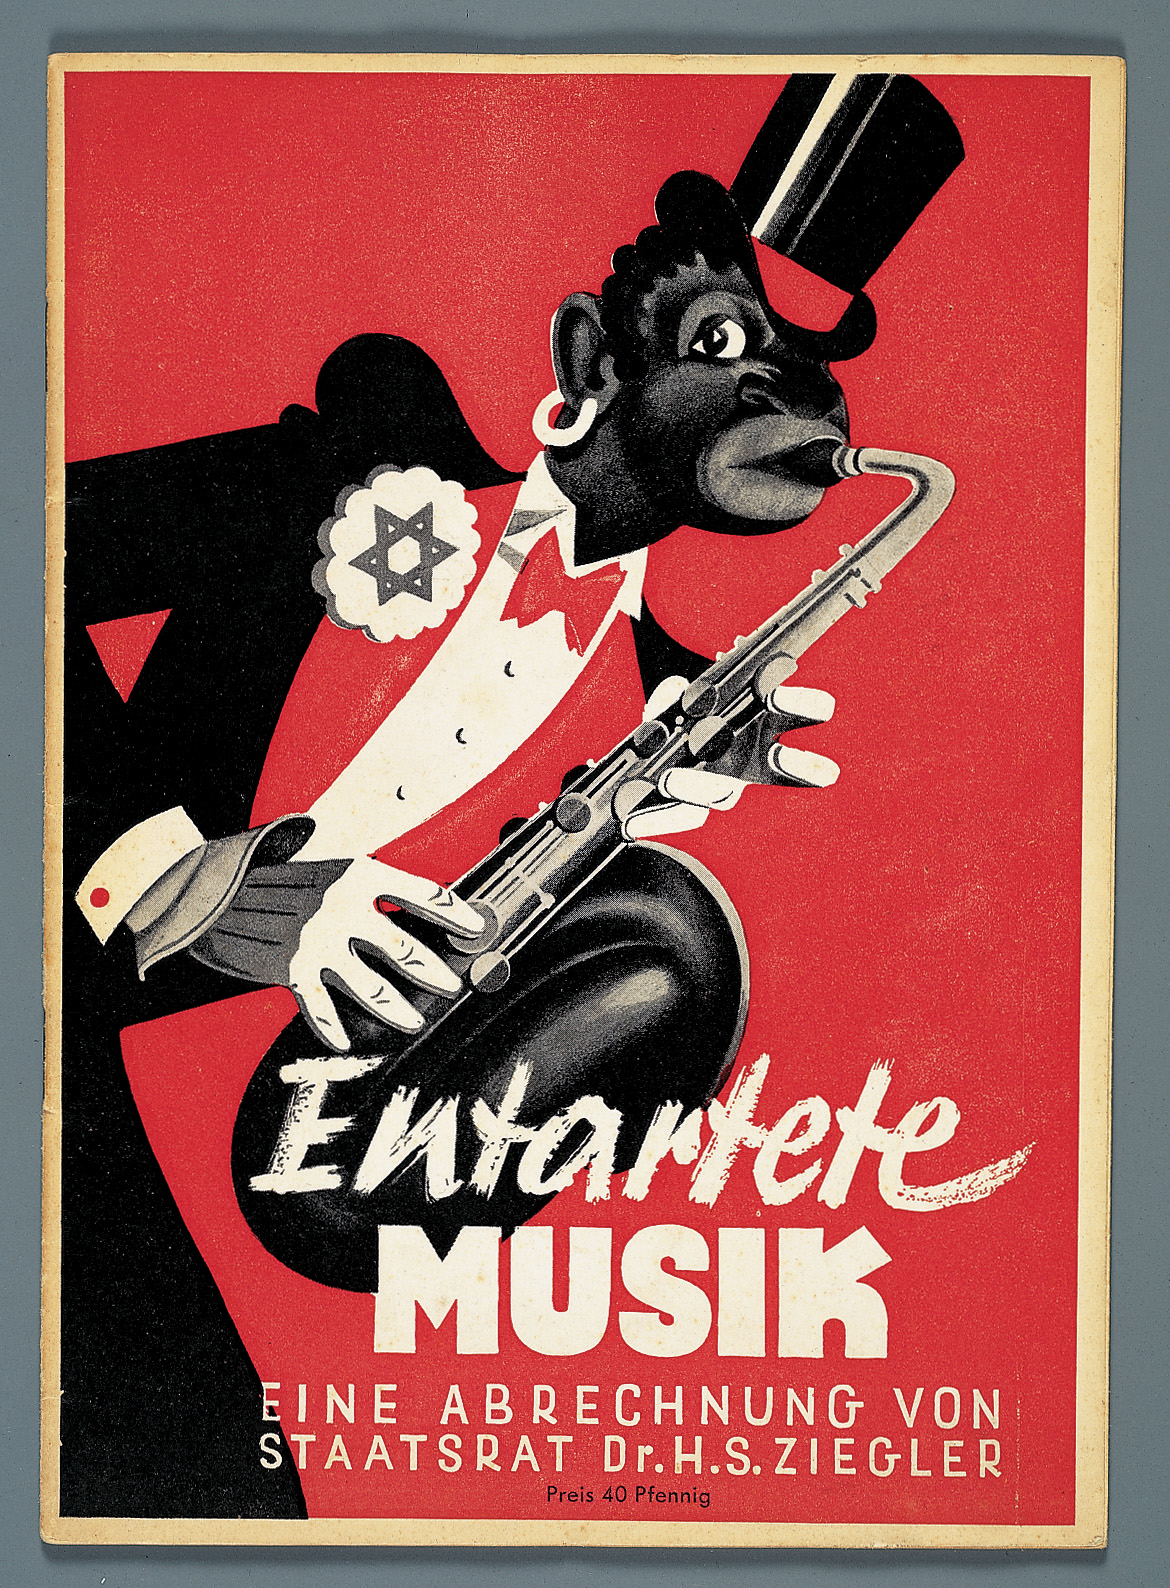 Poster Kunst Degenerate Music And Nazi Germany: A Love/hate